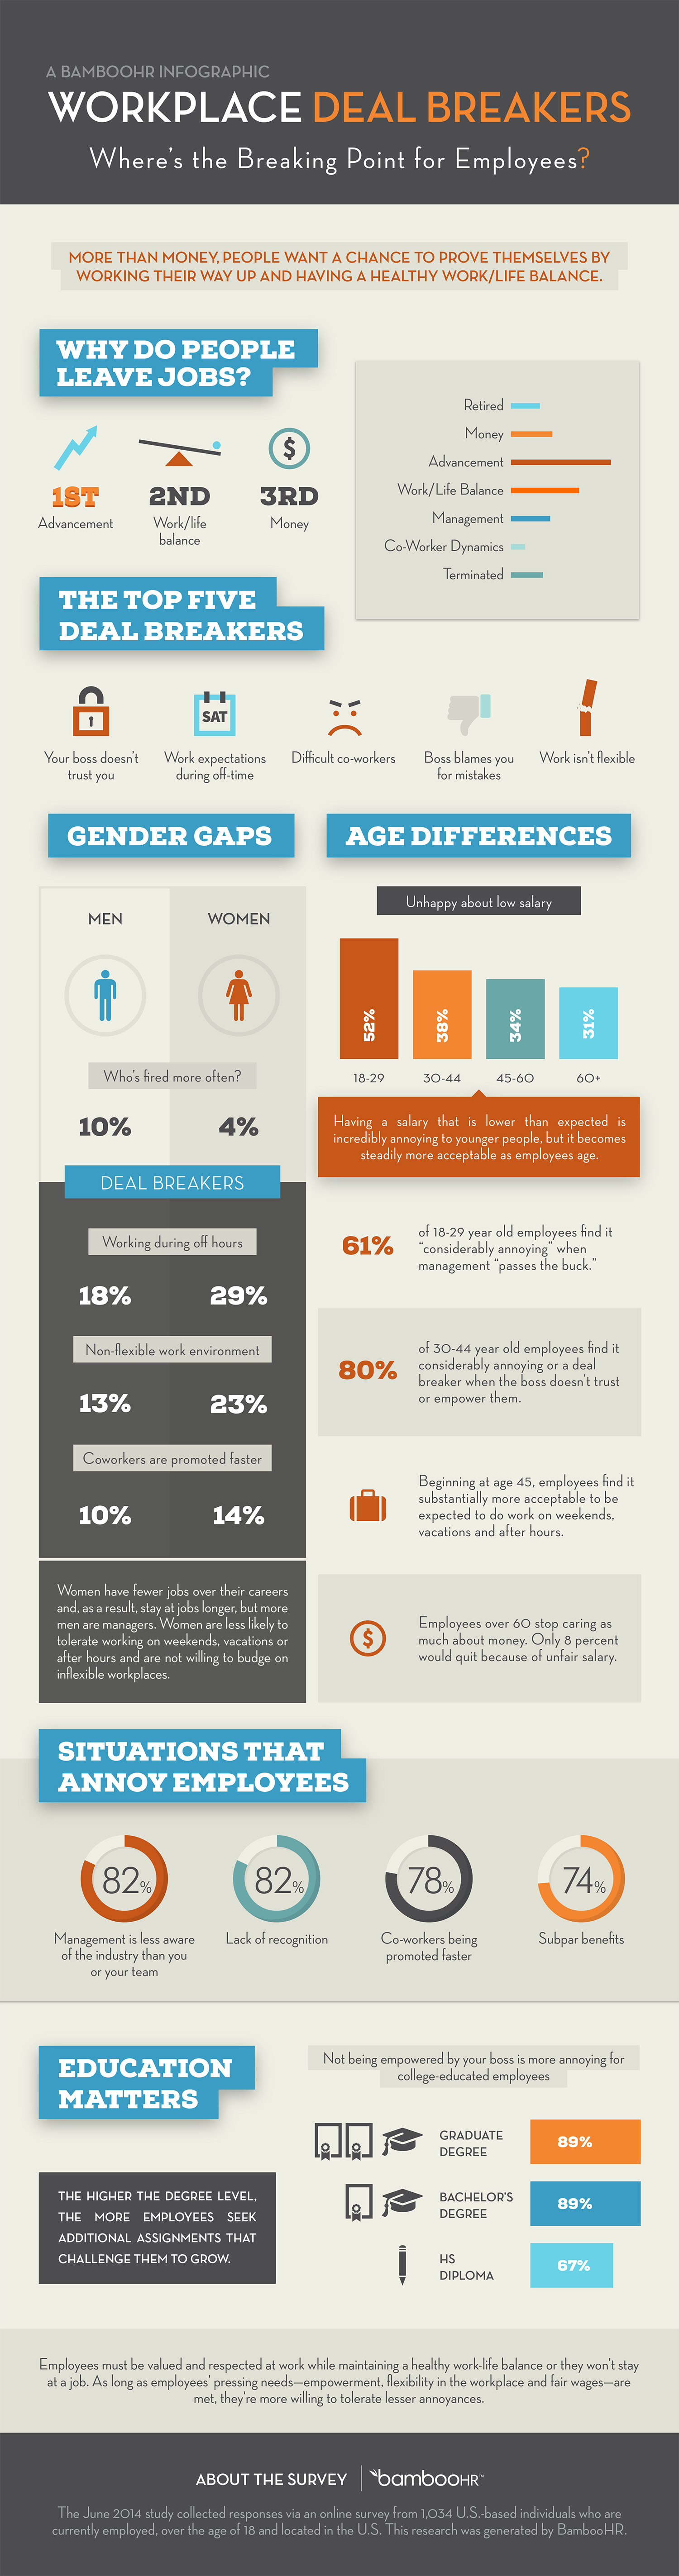 1405447191-why-people-actually-quit-jobs-infographic